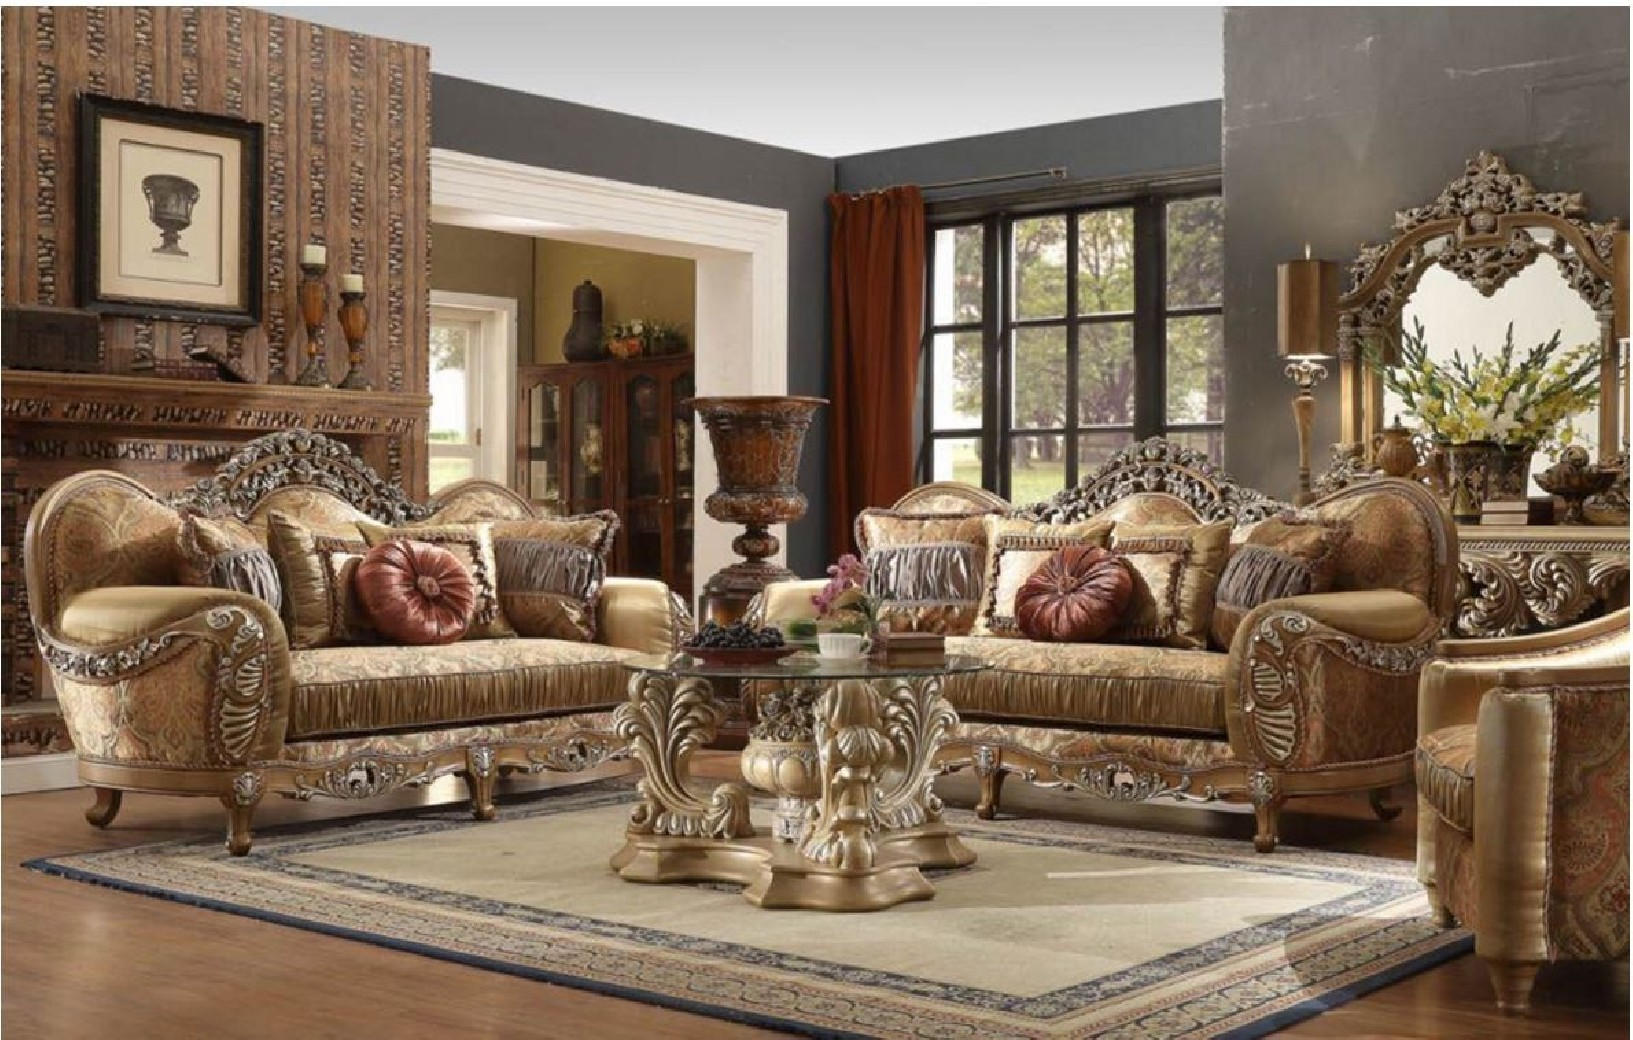 Victoria sofa set victorian traditional antique style sofa for Designer living room sets